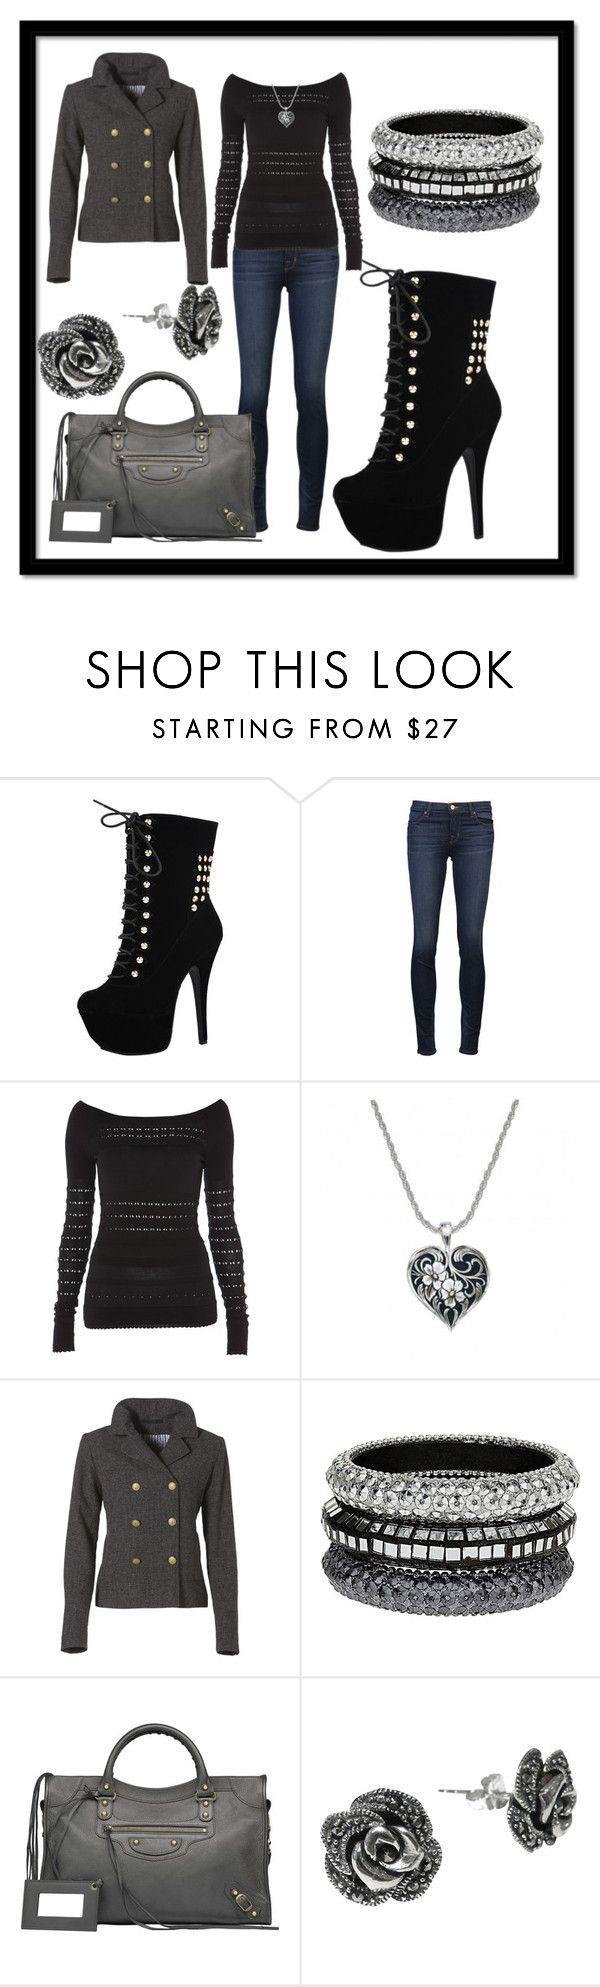 """Black and Gray"" by yadira-hernandez ❤ liked on Polyvore featuring Dollhouse, J Brand, Temperley London, GANT, Dorothy Perkins, Balenciaga, Goldmajor, pea coats, jeans and fall"